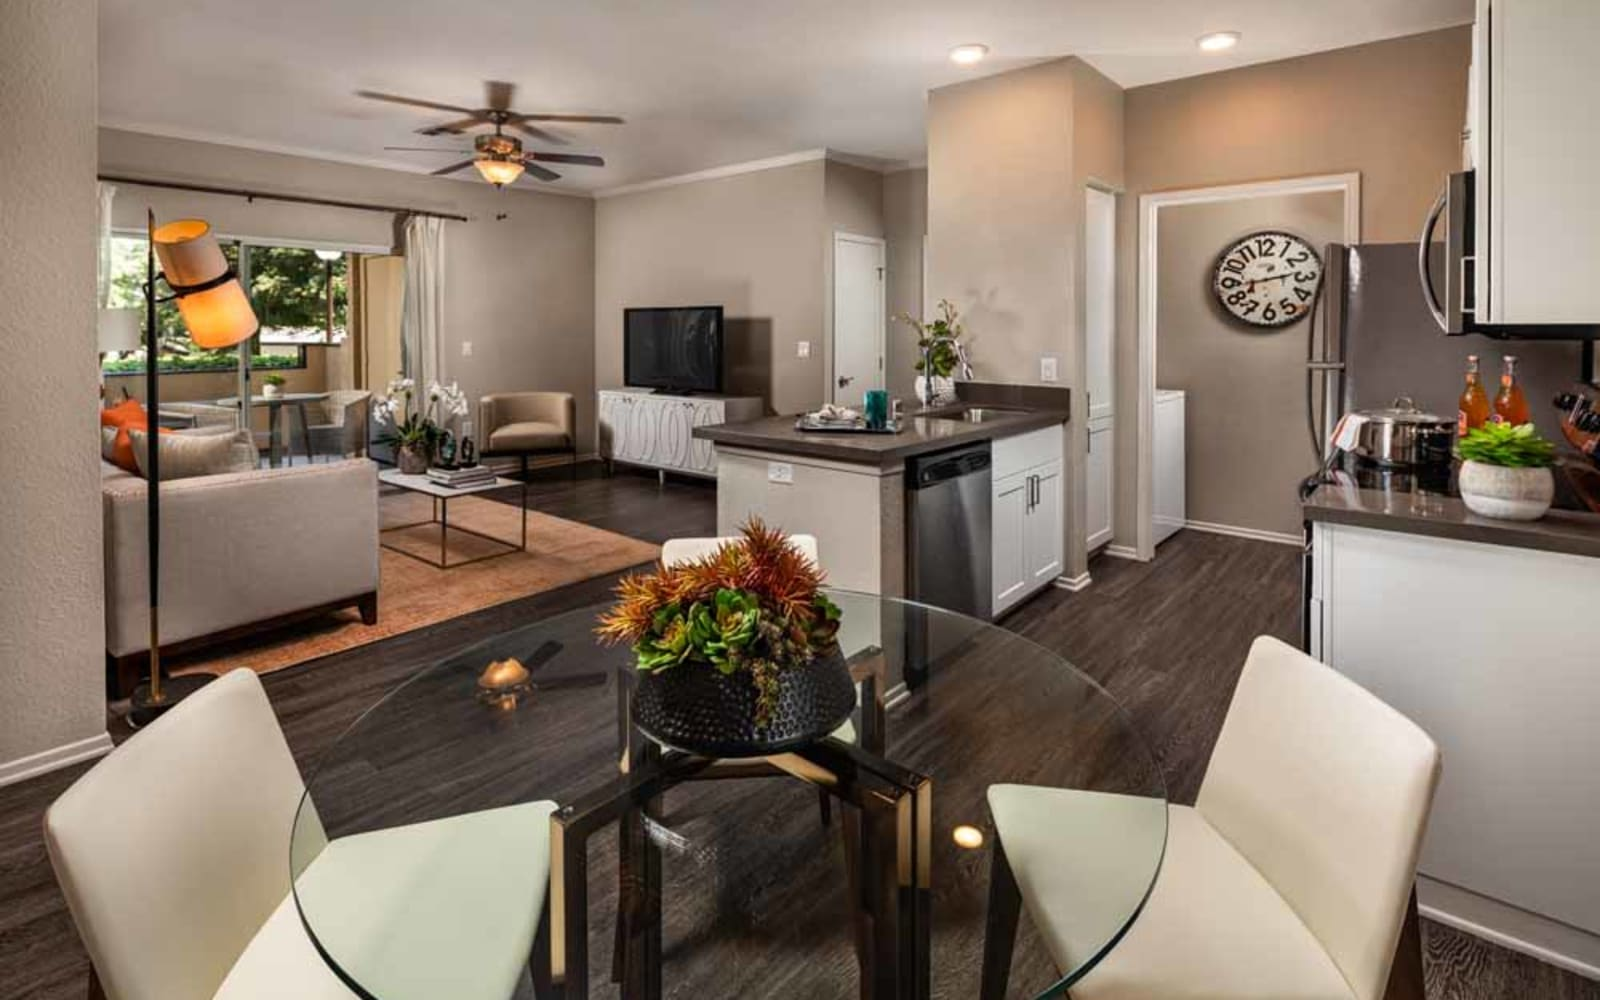 An inviting apartment kitchen, dining room and living room at Colonnade at Sycamore Highlands in Riverside, California